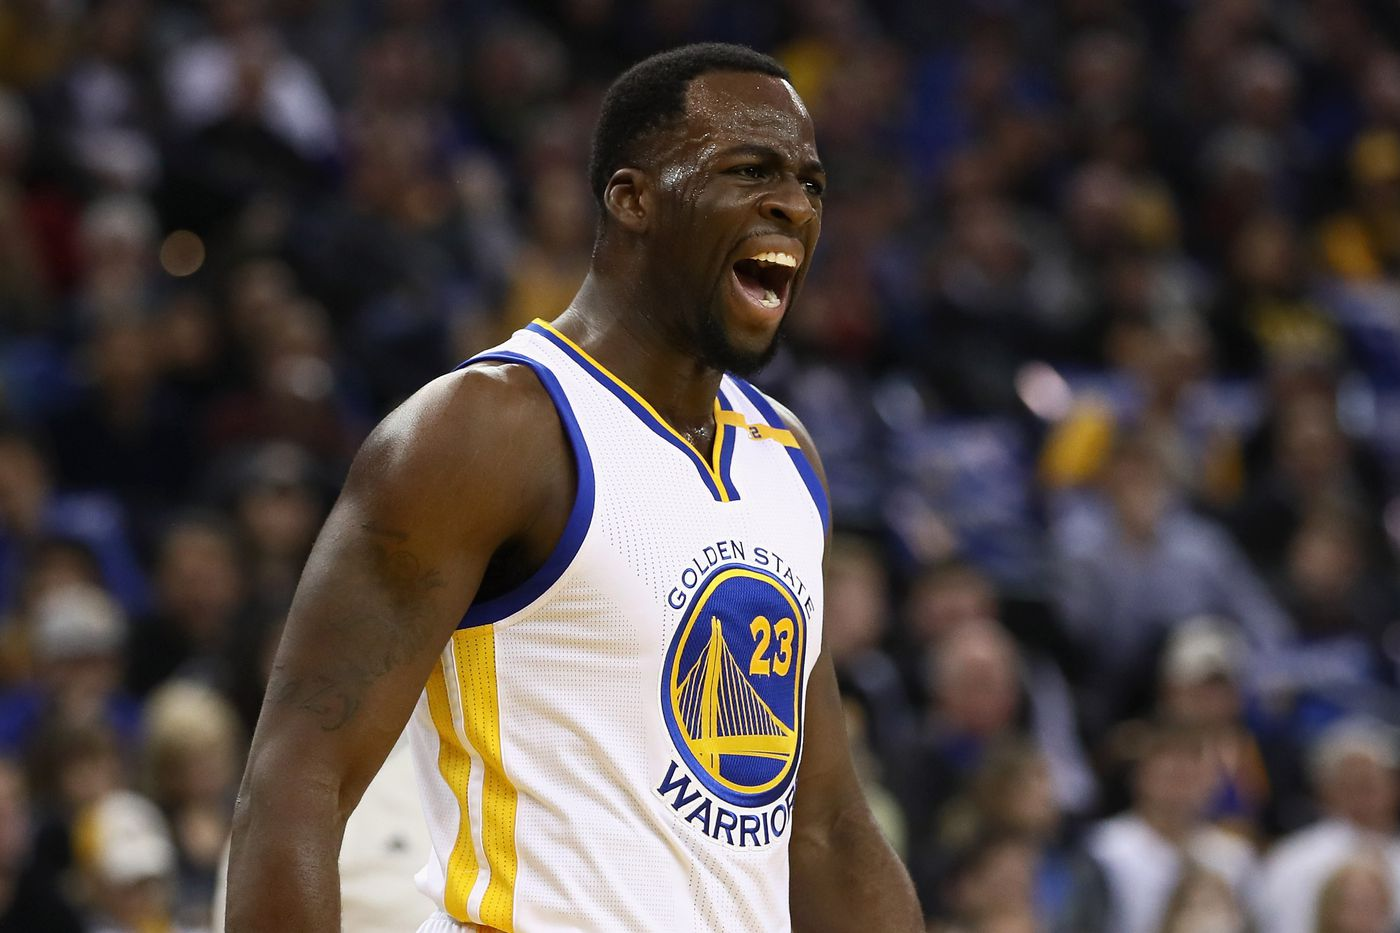 Draymond Green recorded the 1st NBA triple double without the